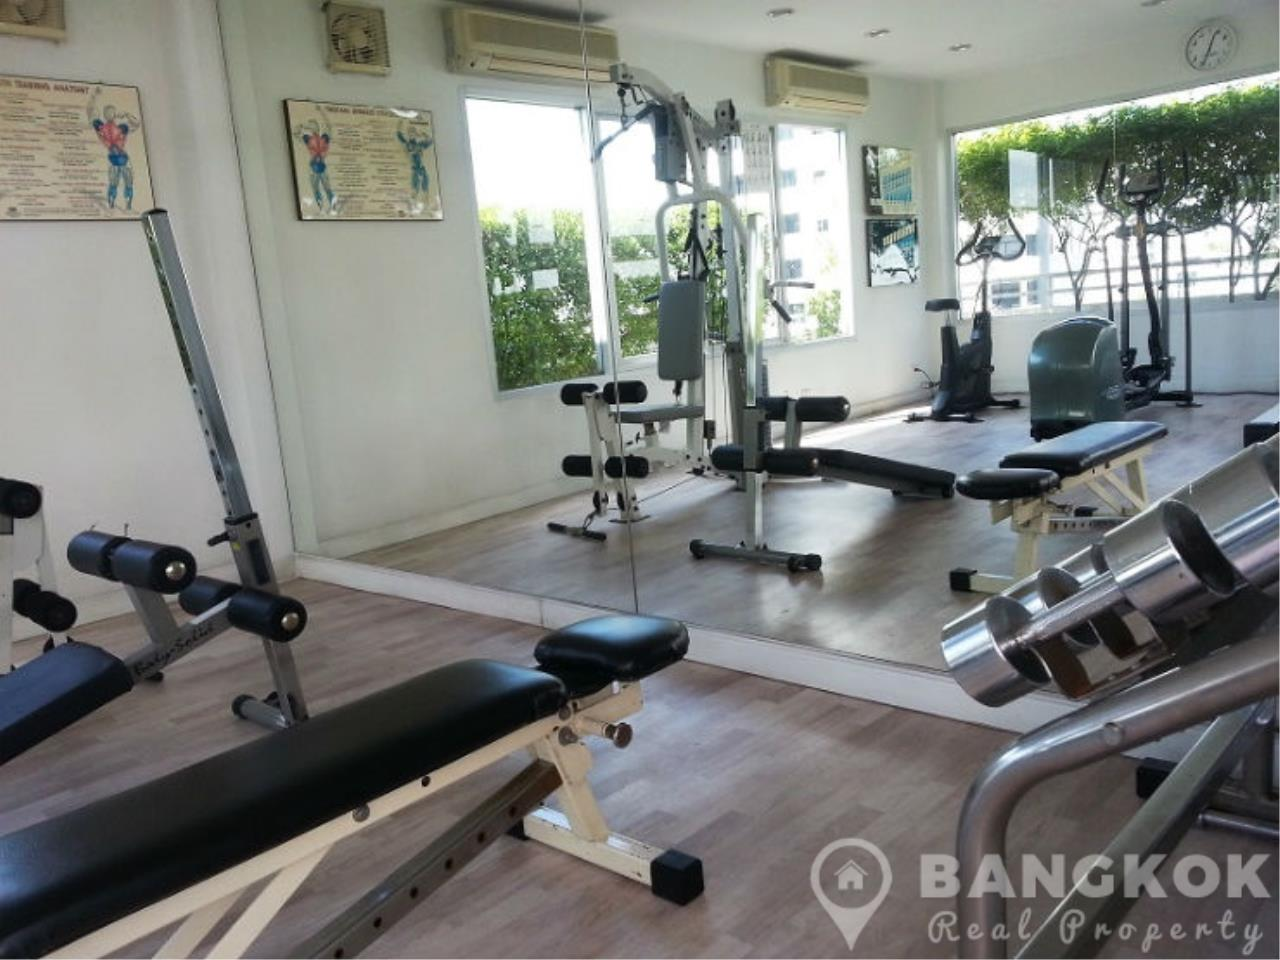 Bangkok Real Property Agency's 49 Plus | Spacious High Floor 1 Bed 1 Bath in Thonglor 12